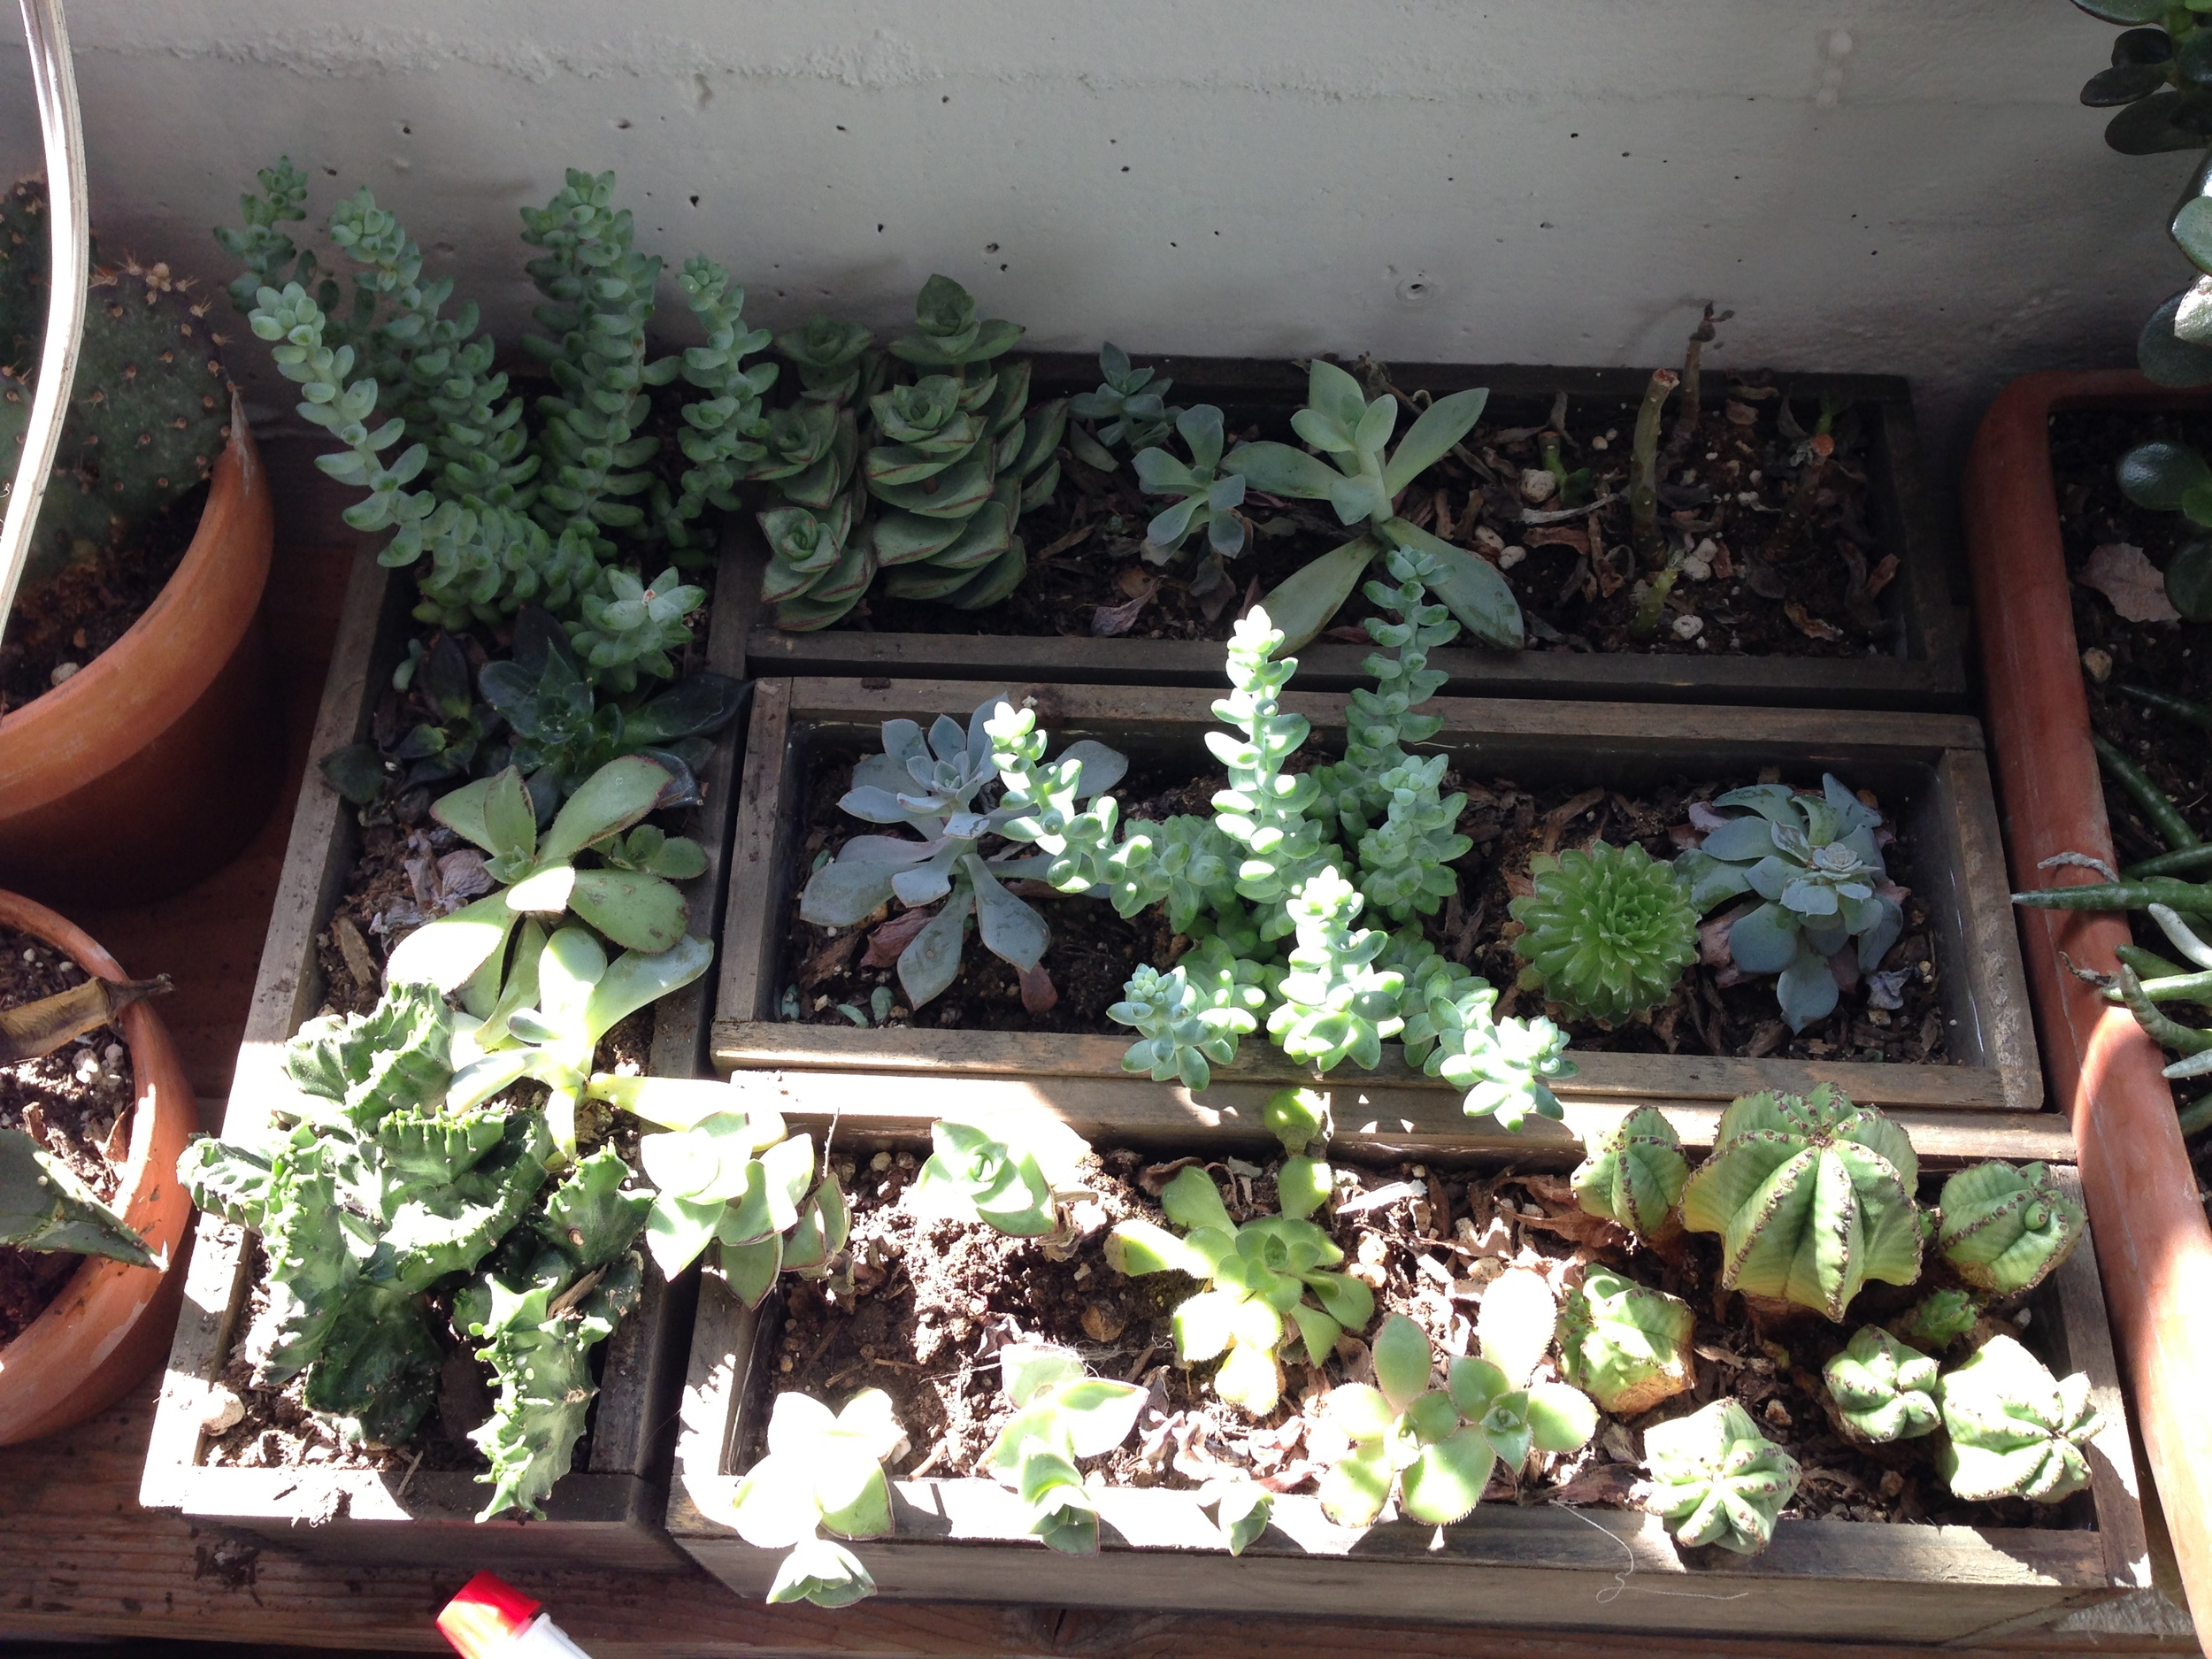 Succulents by the window keeping the studio beautiful.